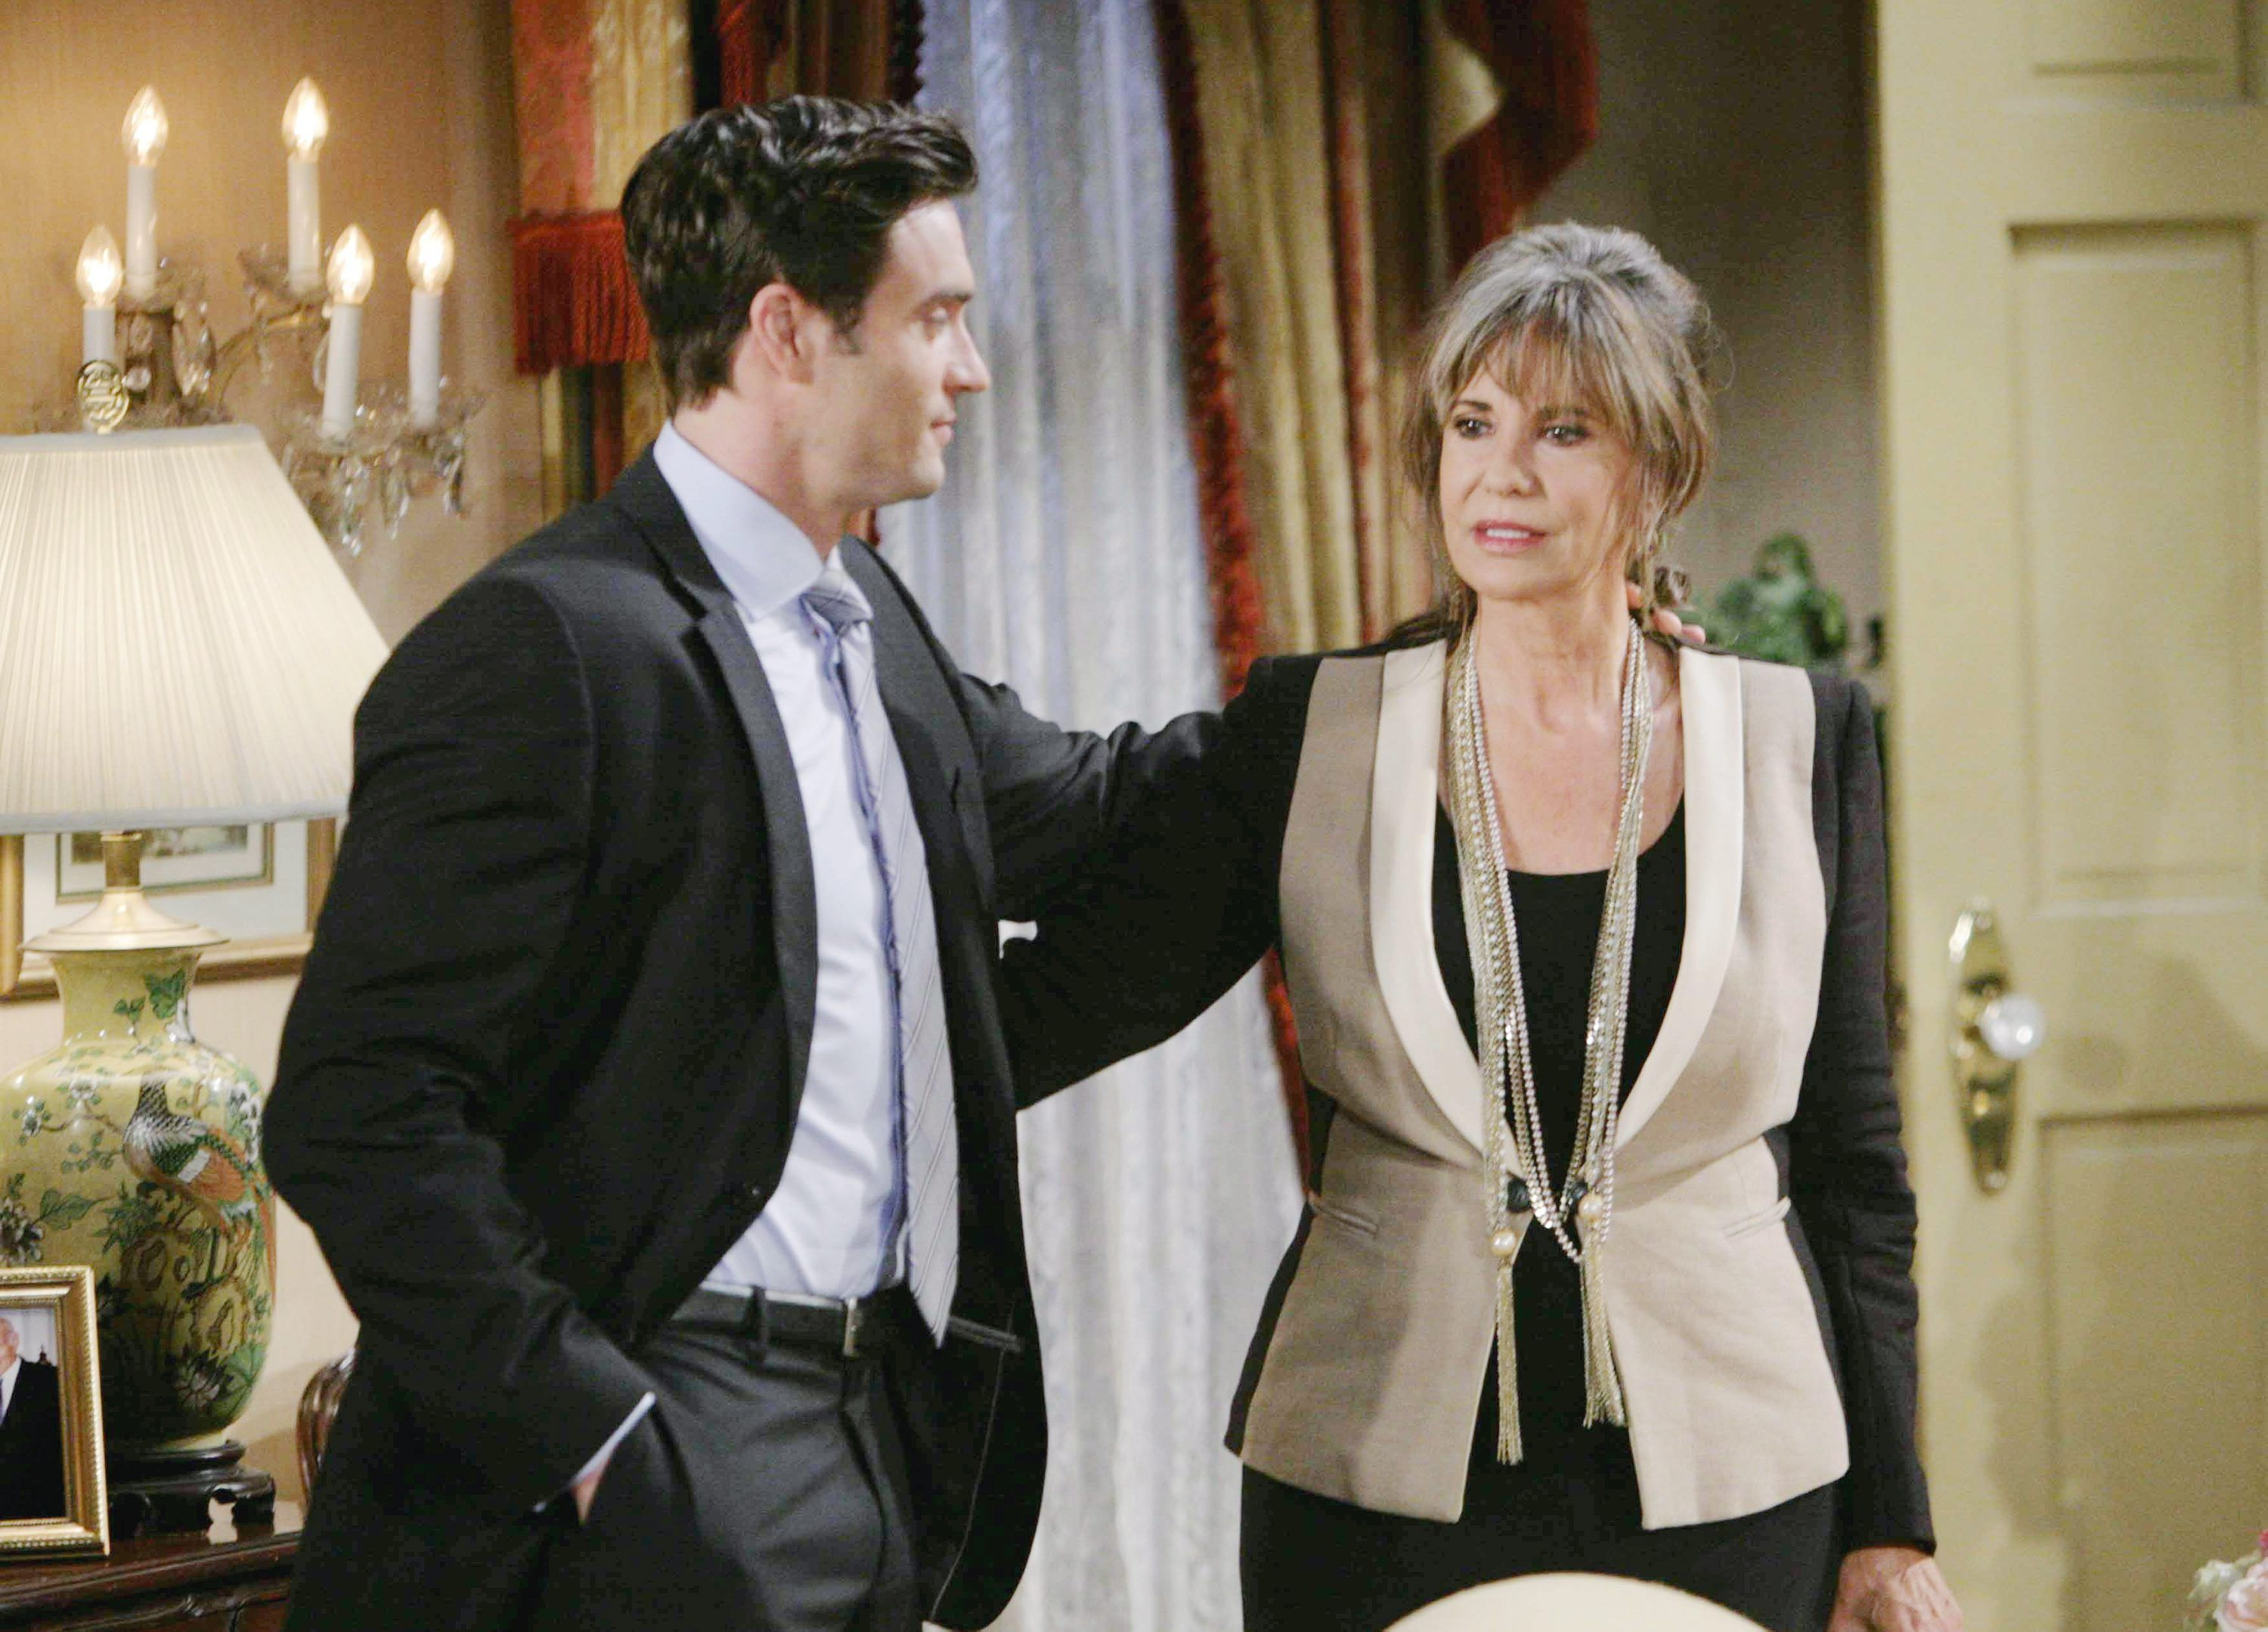 "Jess Walton, Daniel Goddard""The Young and the Restless"" Set CBS television CityLos Angeles07/01/13© Howard Wise/jpistudios.com310-657-9661Episode # 10224U.S. Airdate 08/16/13"